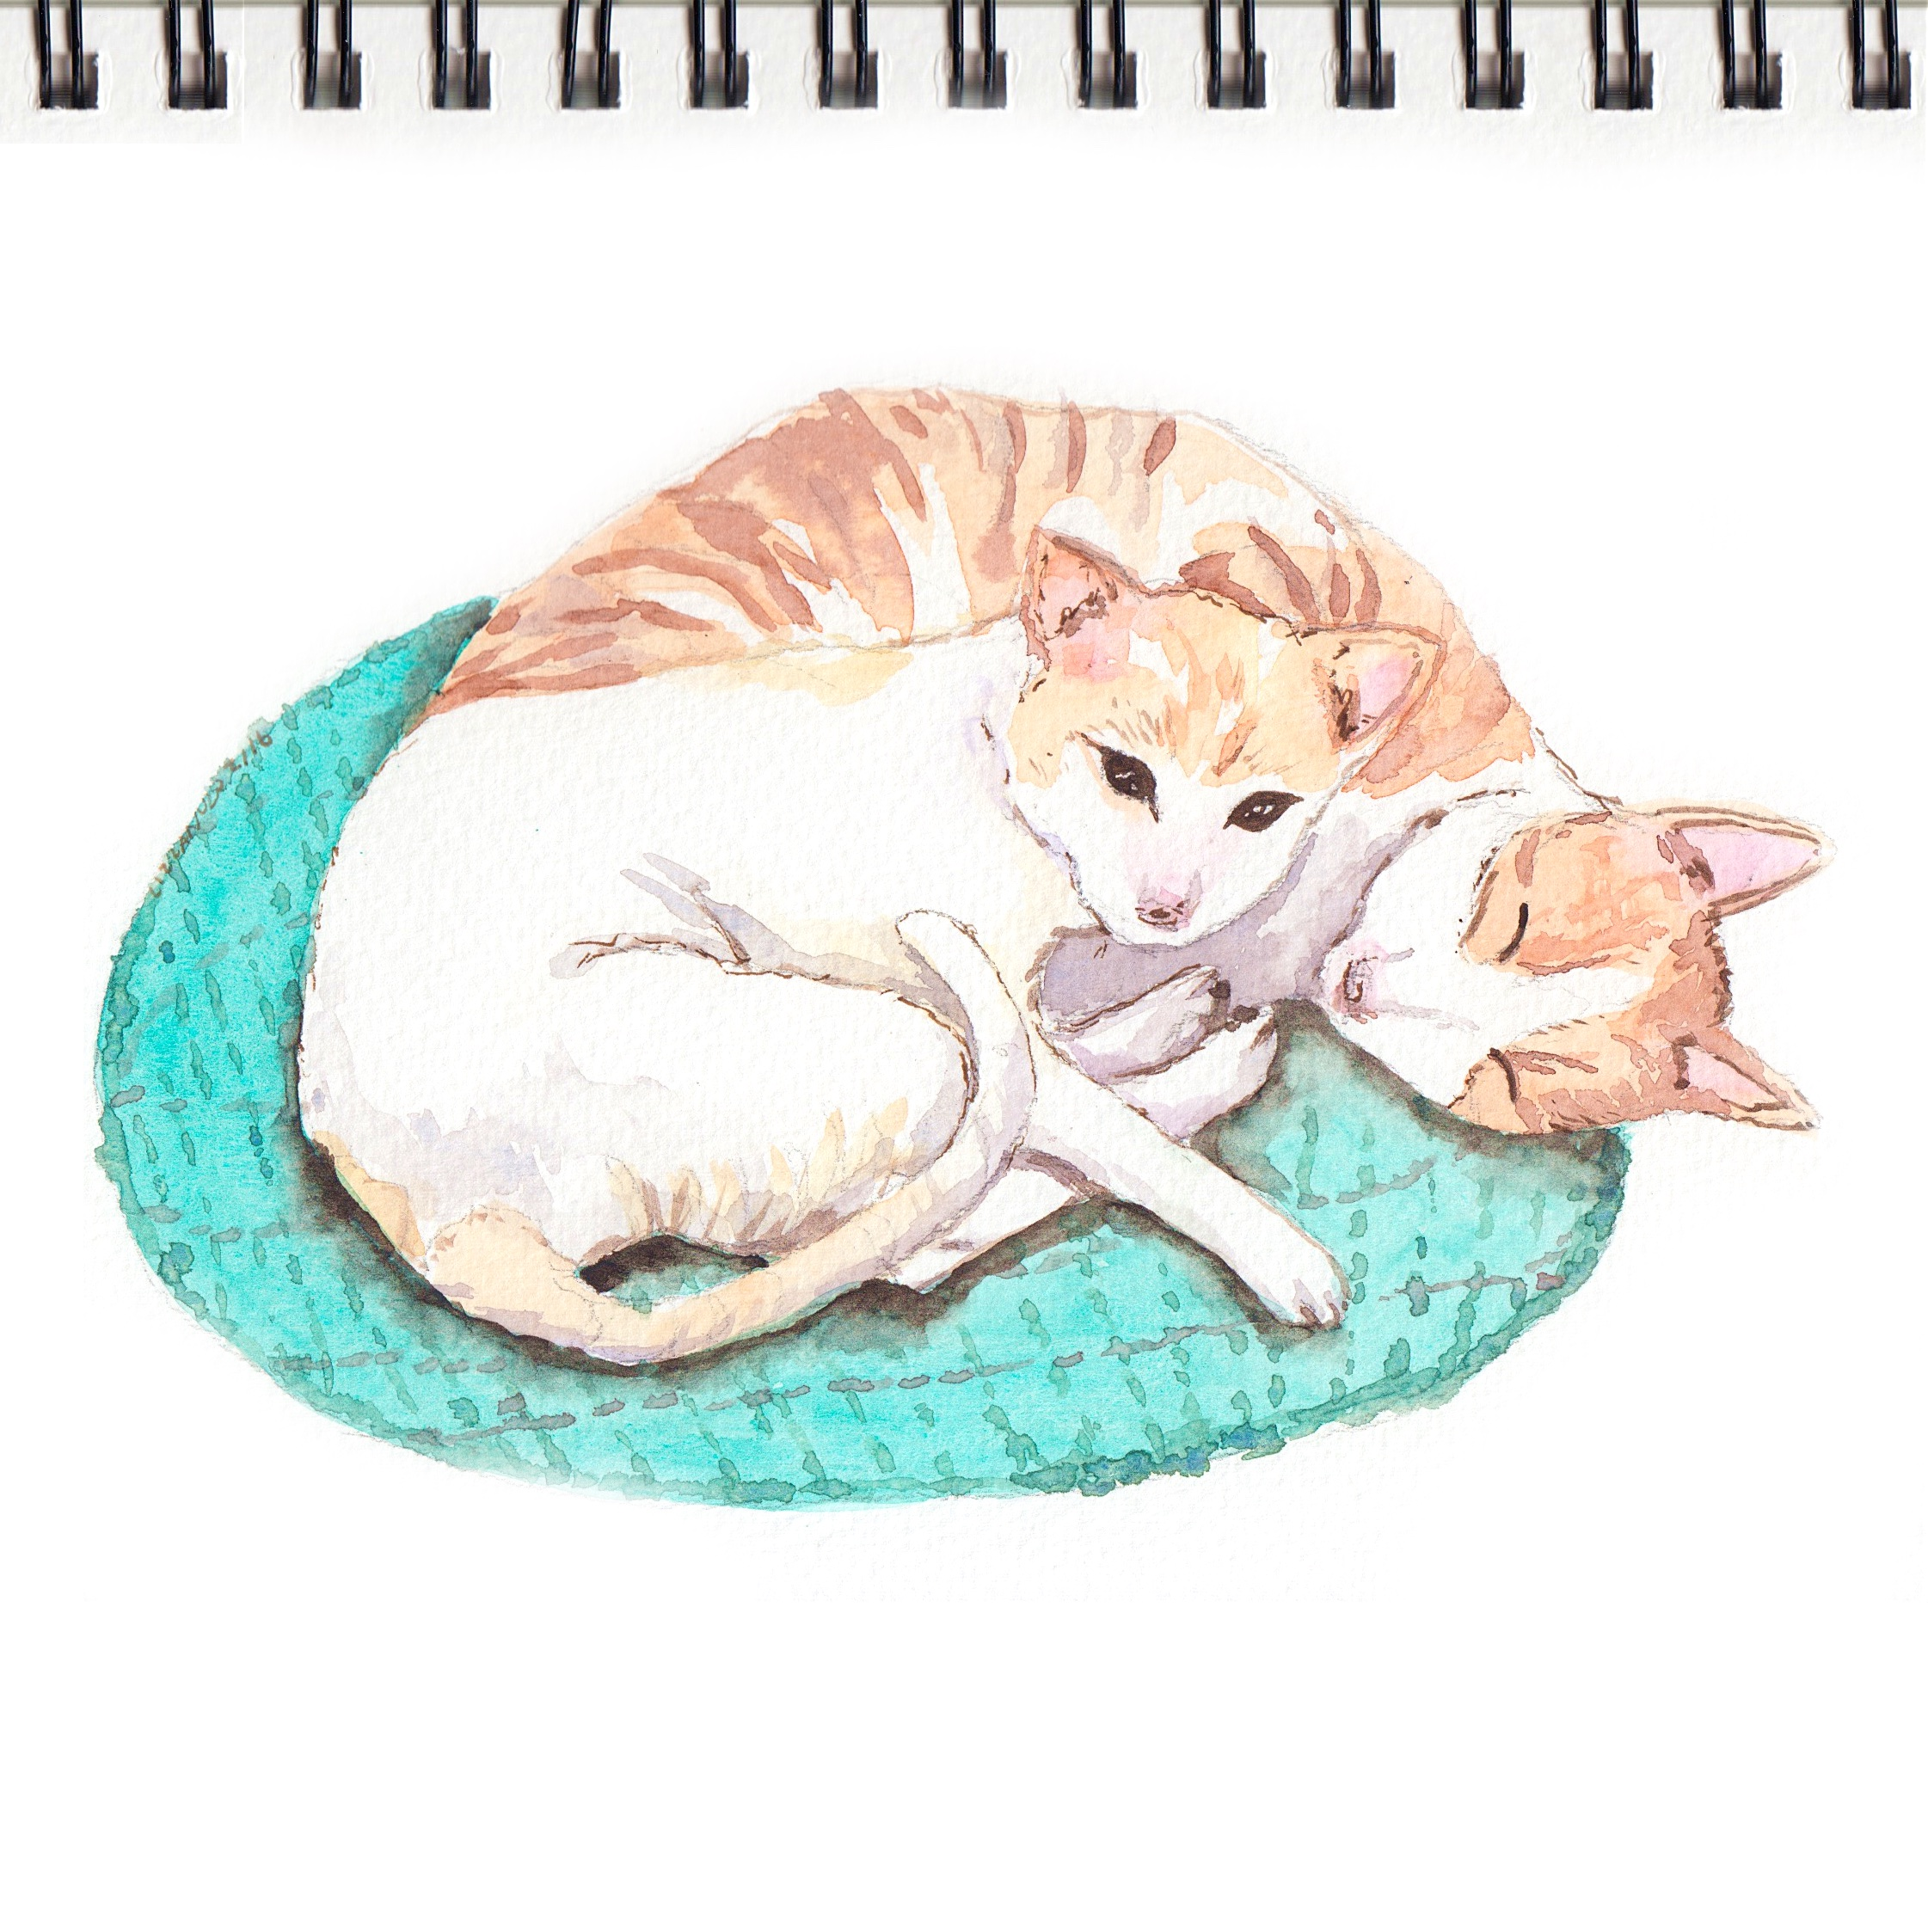 Cats on a teal rug / Watercolor on paper by Liz Lanuzo